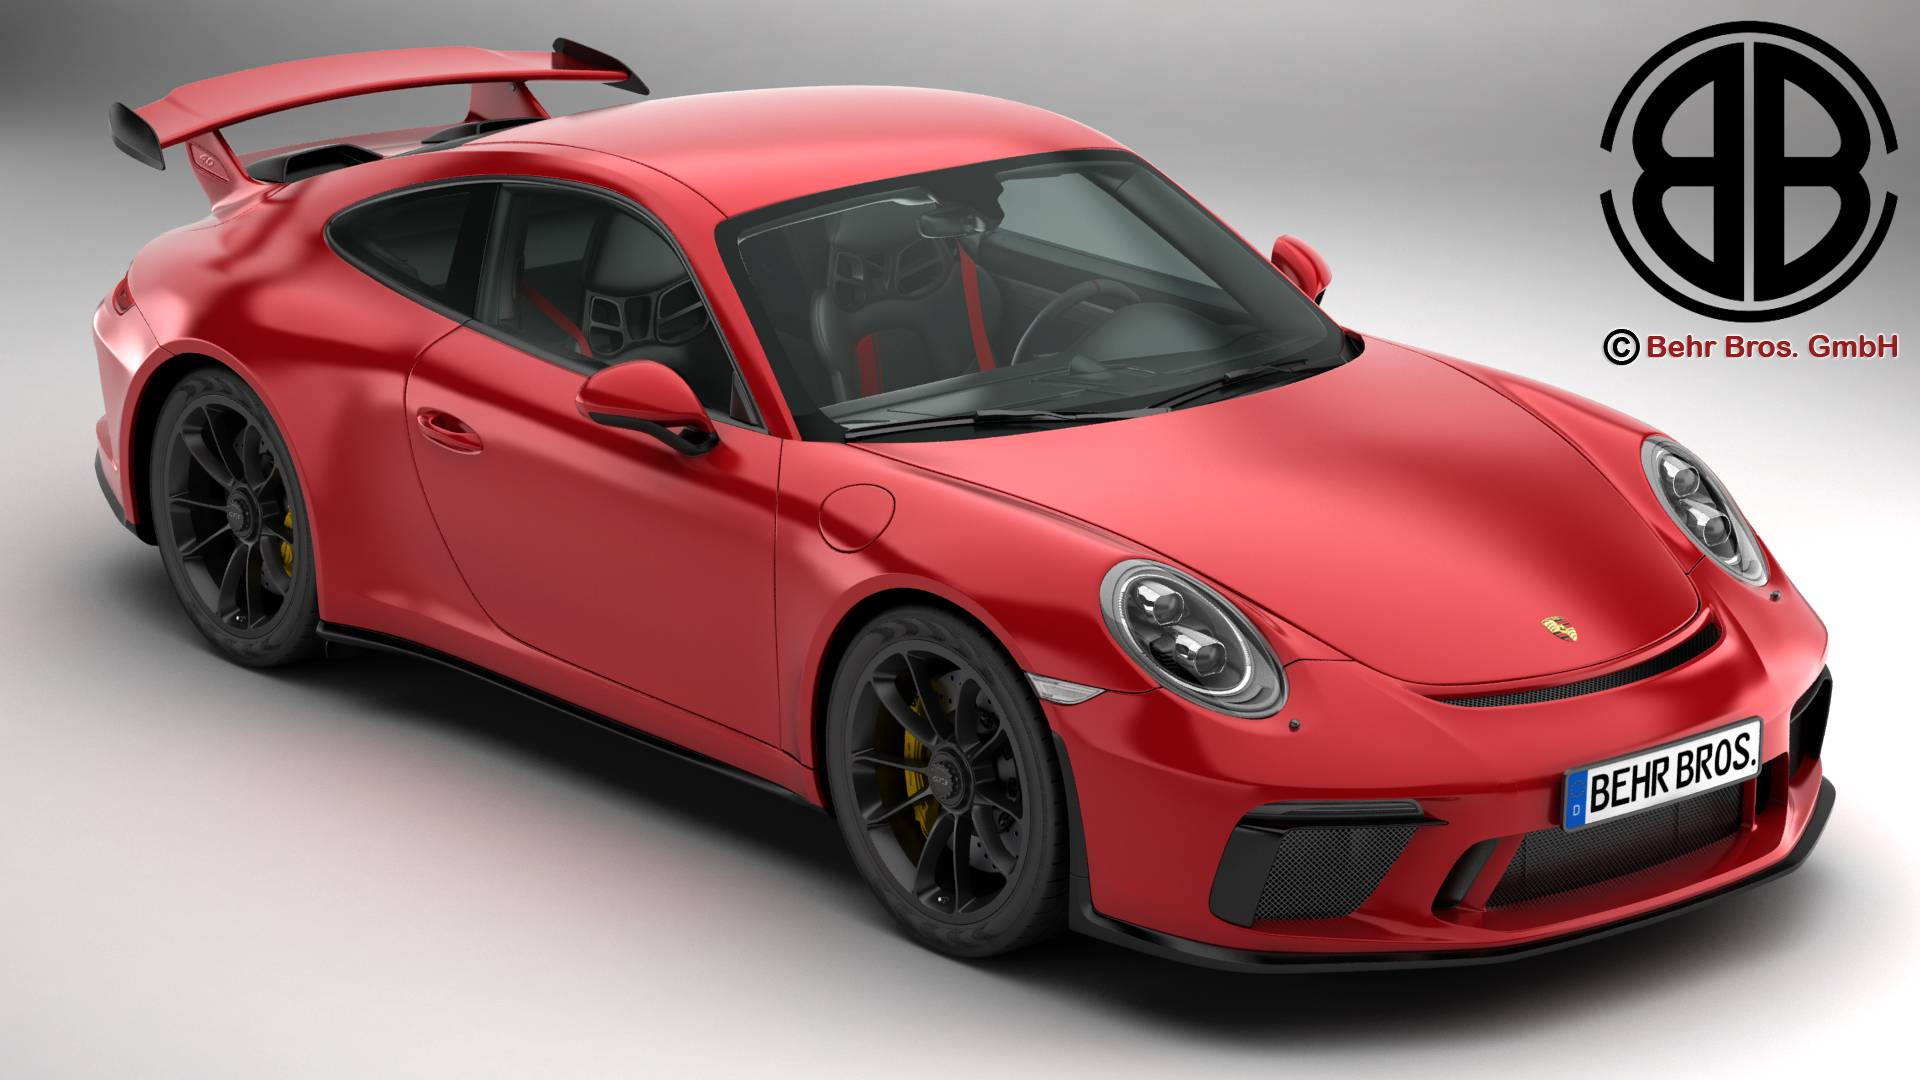 porsche 911 gt3 2018 model 3ds max fbx c3d le do thoil 4